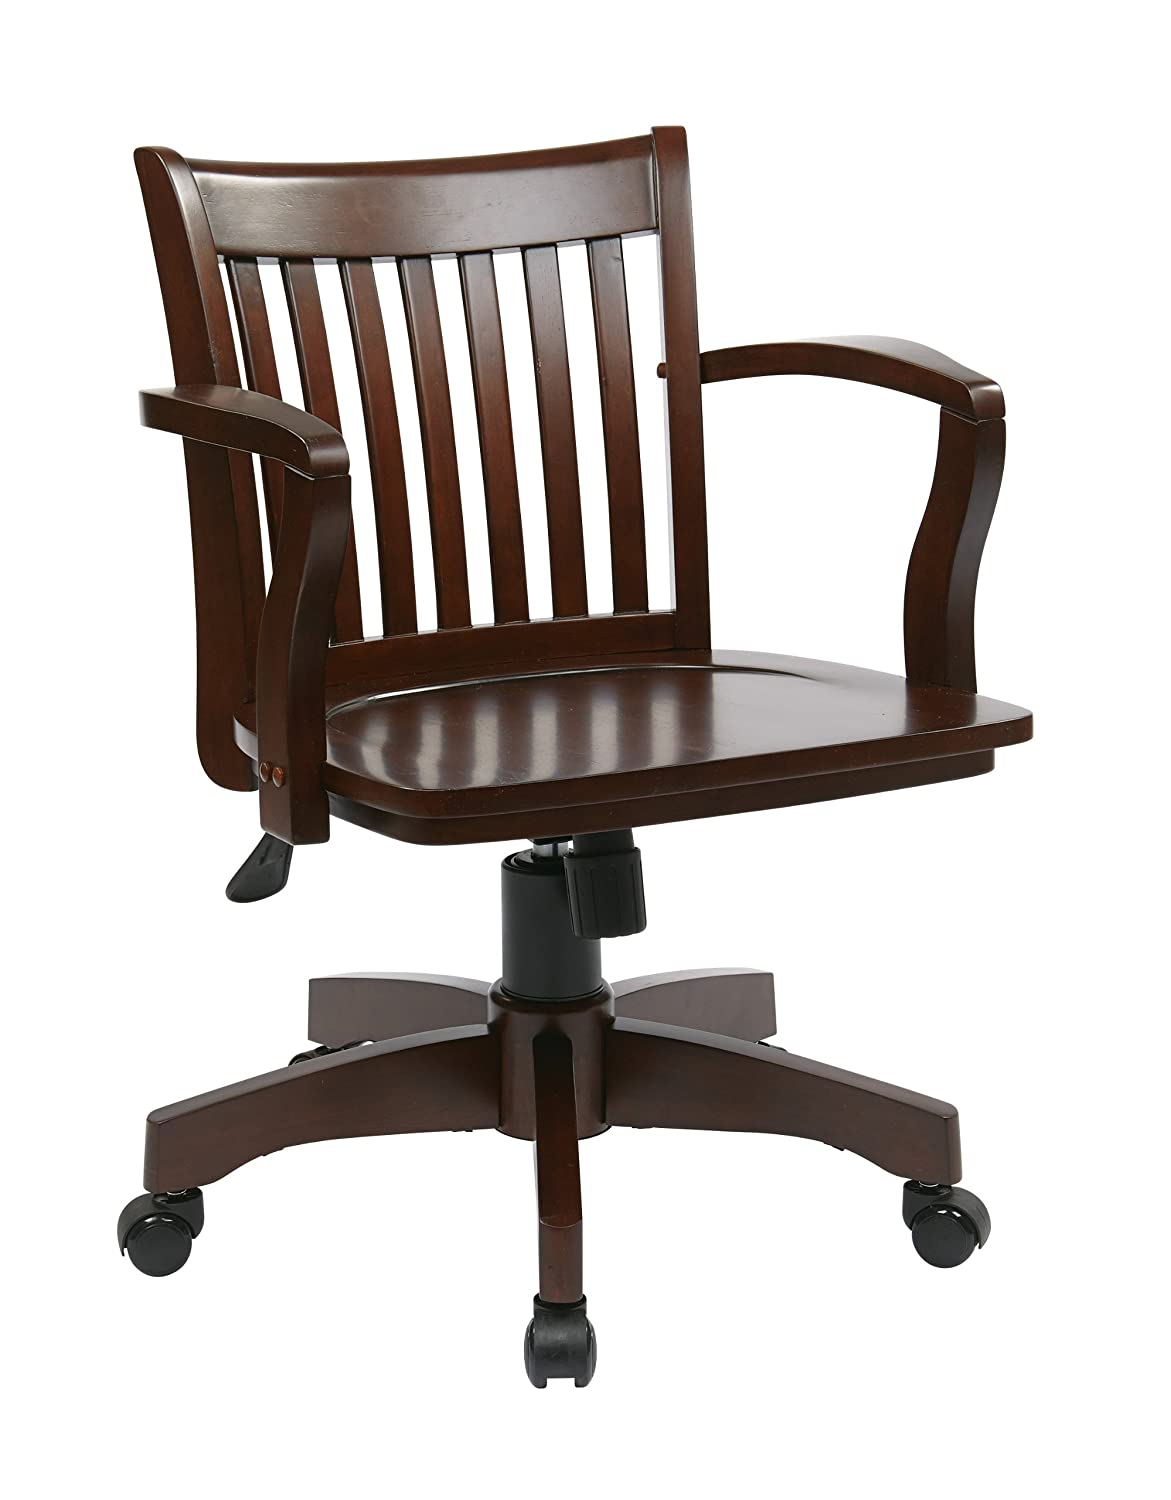 Amazoncom Office Star Deluxe Wood Bankers Desk Chair with Wood